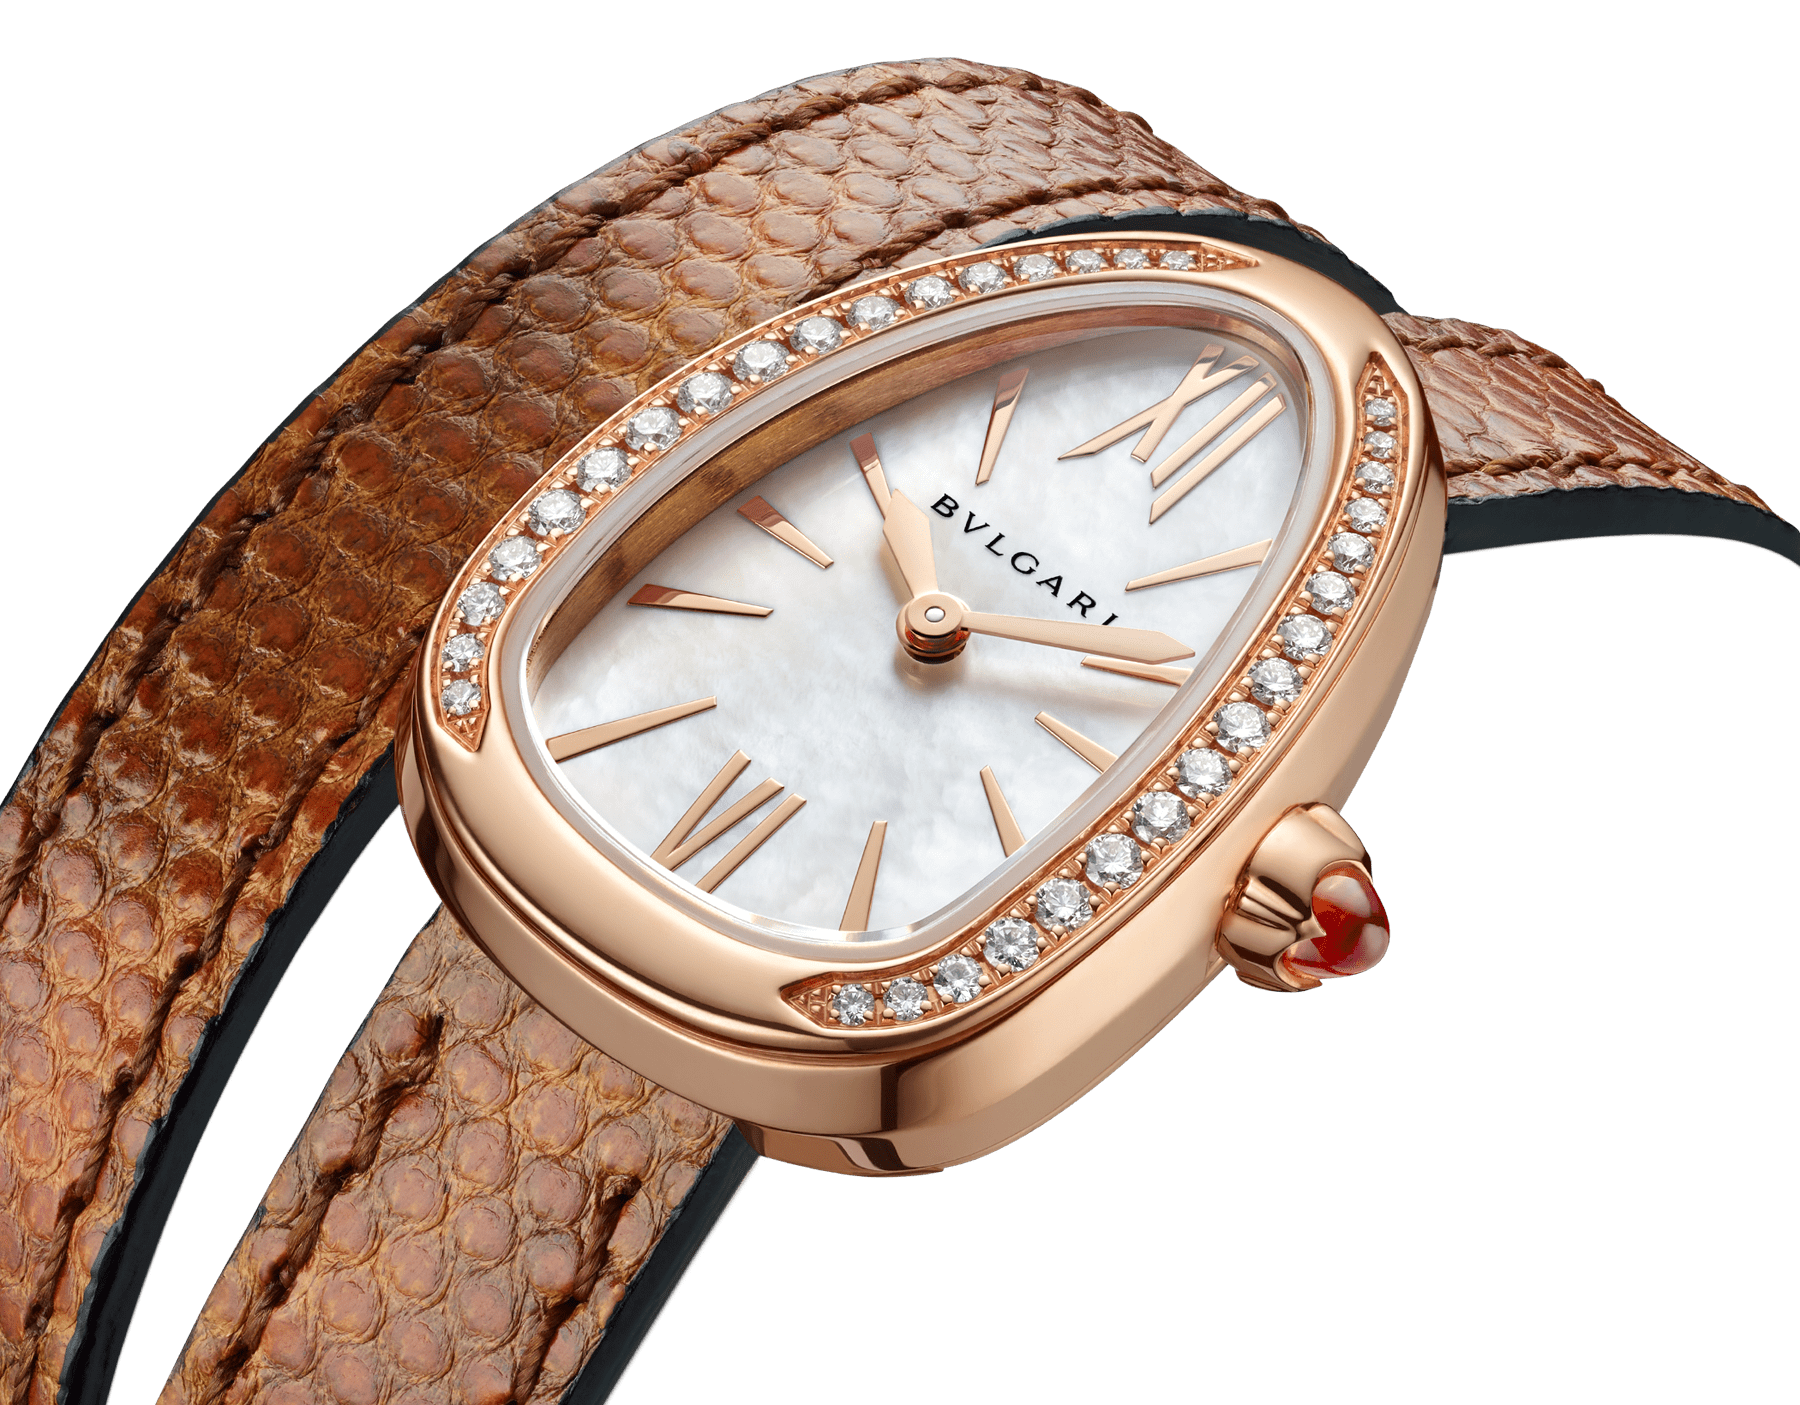 Serpenti watch with 18 kt rose gold case set with brilliant cut diamonds, white mother-of-pearl dial and interchangeable double spiral bracelet in brown karung leather. 102727 image 3